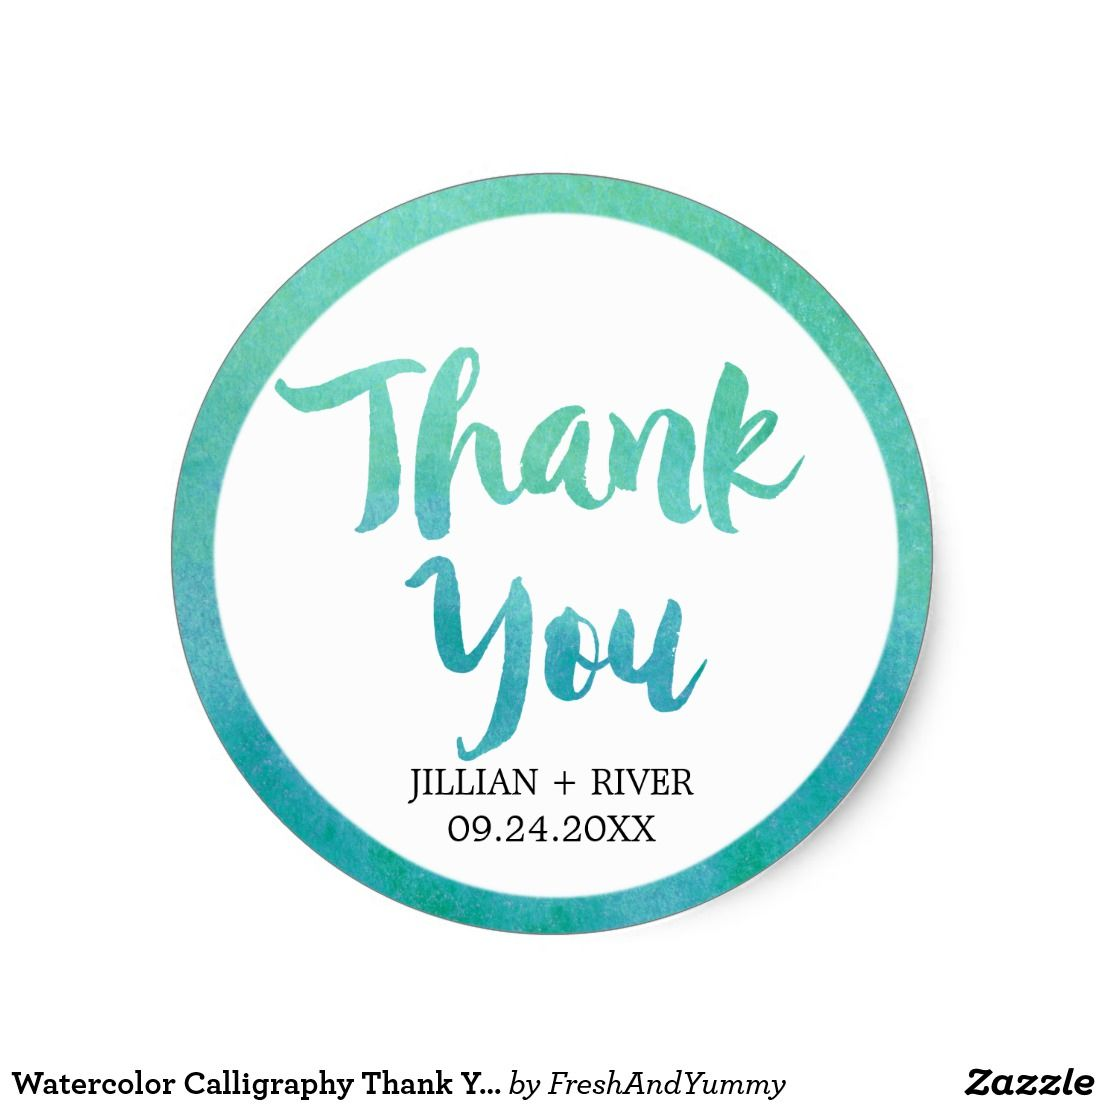 Watercolor Calligraphy Thank You Wedding Favor Classic Round Sticker ...